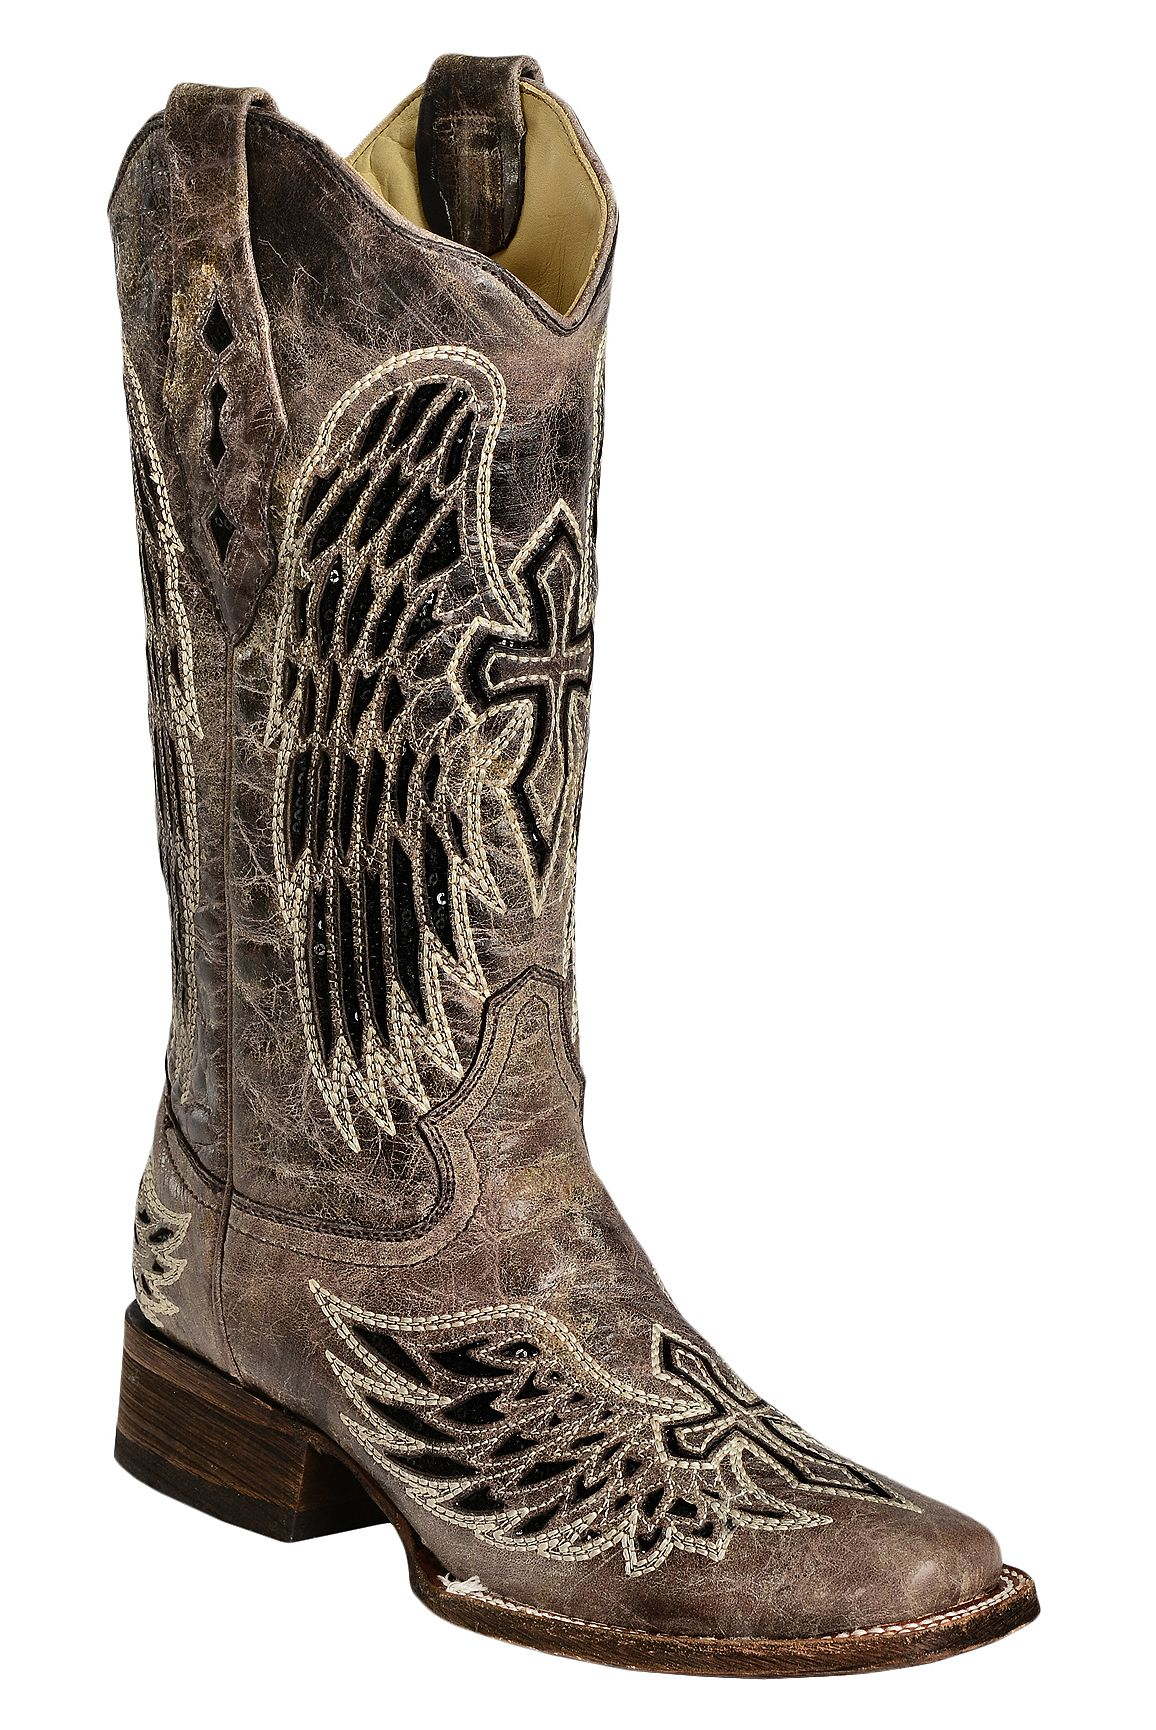 Corral Black Sequin Wing Cross Inlay Cowgirl Boots